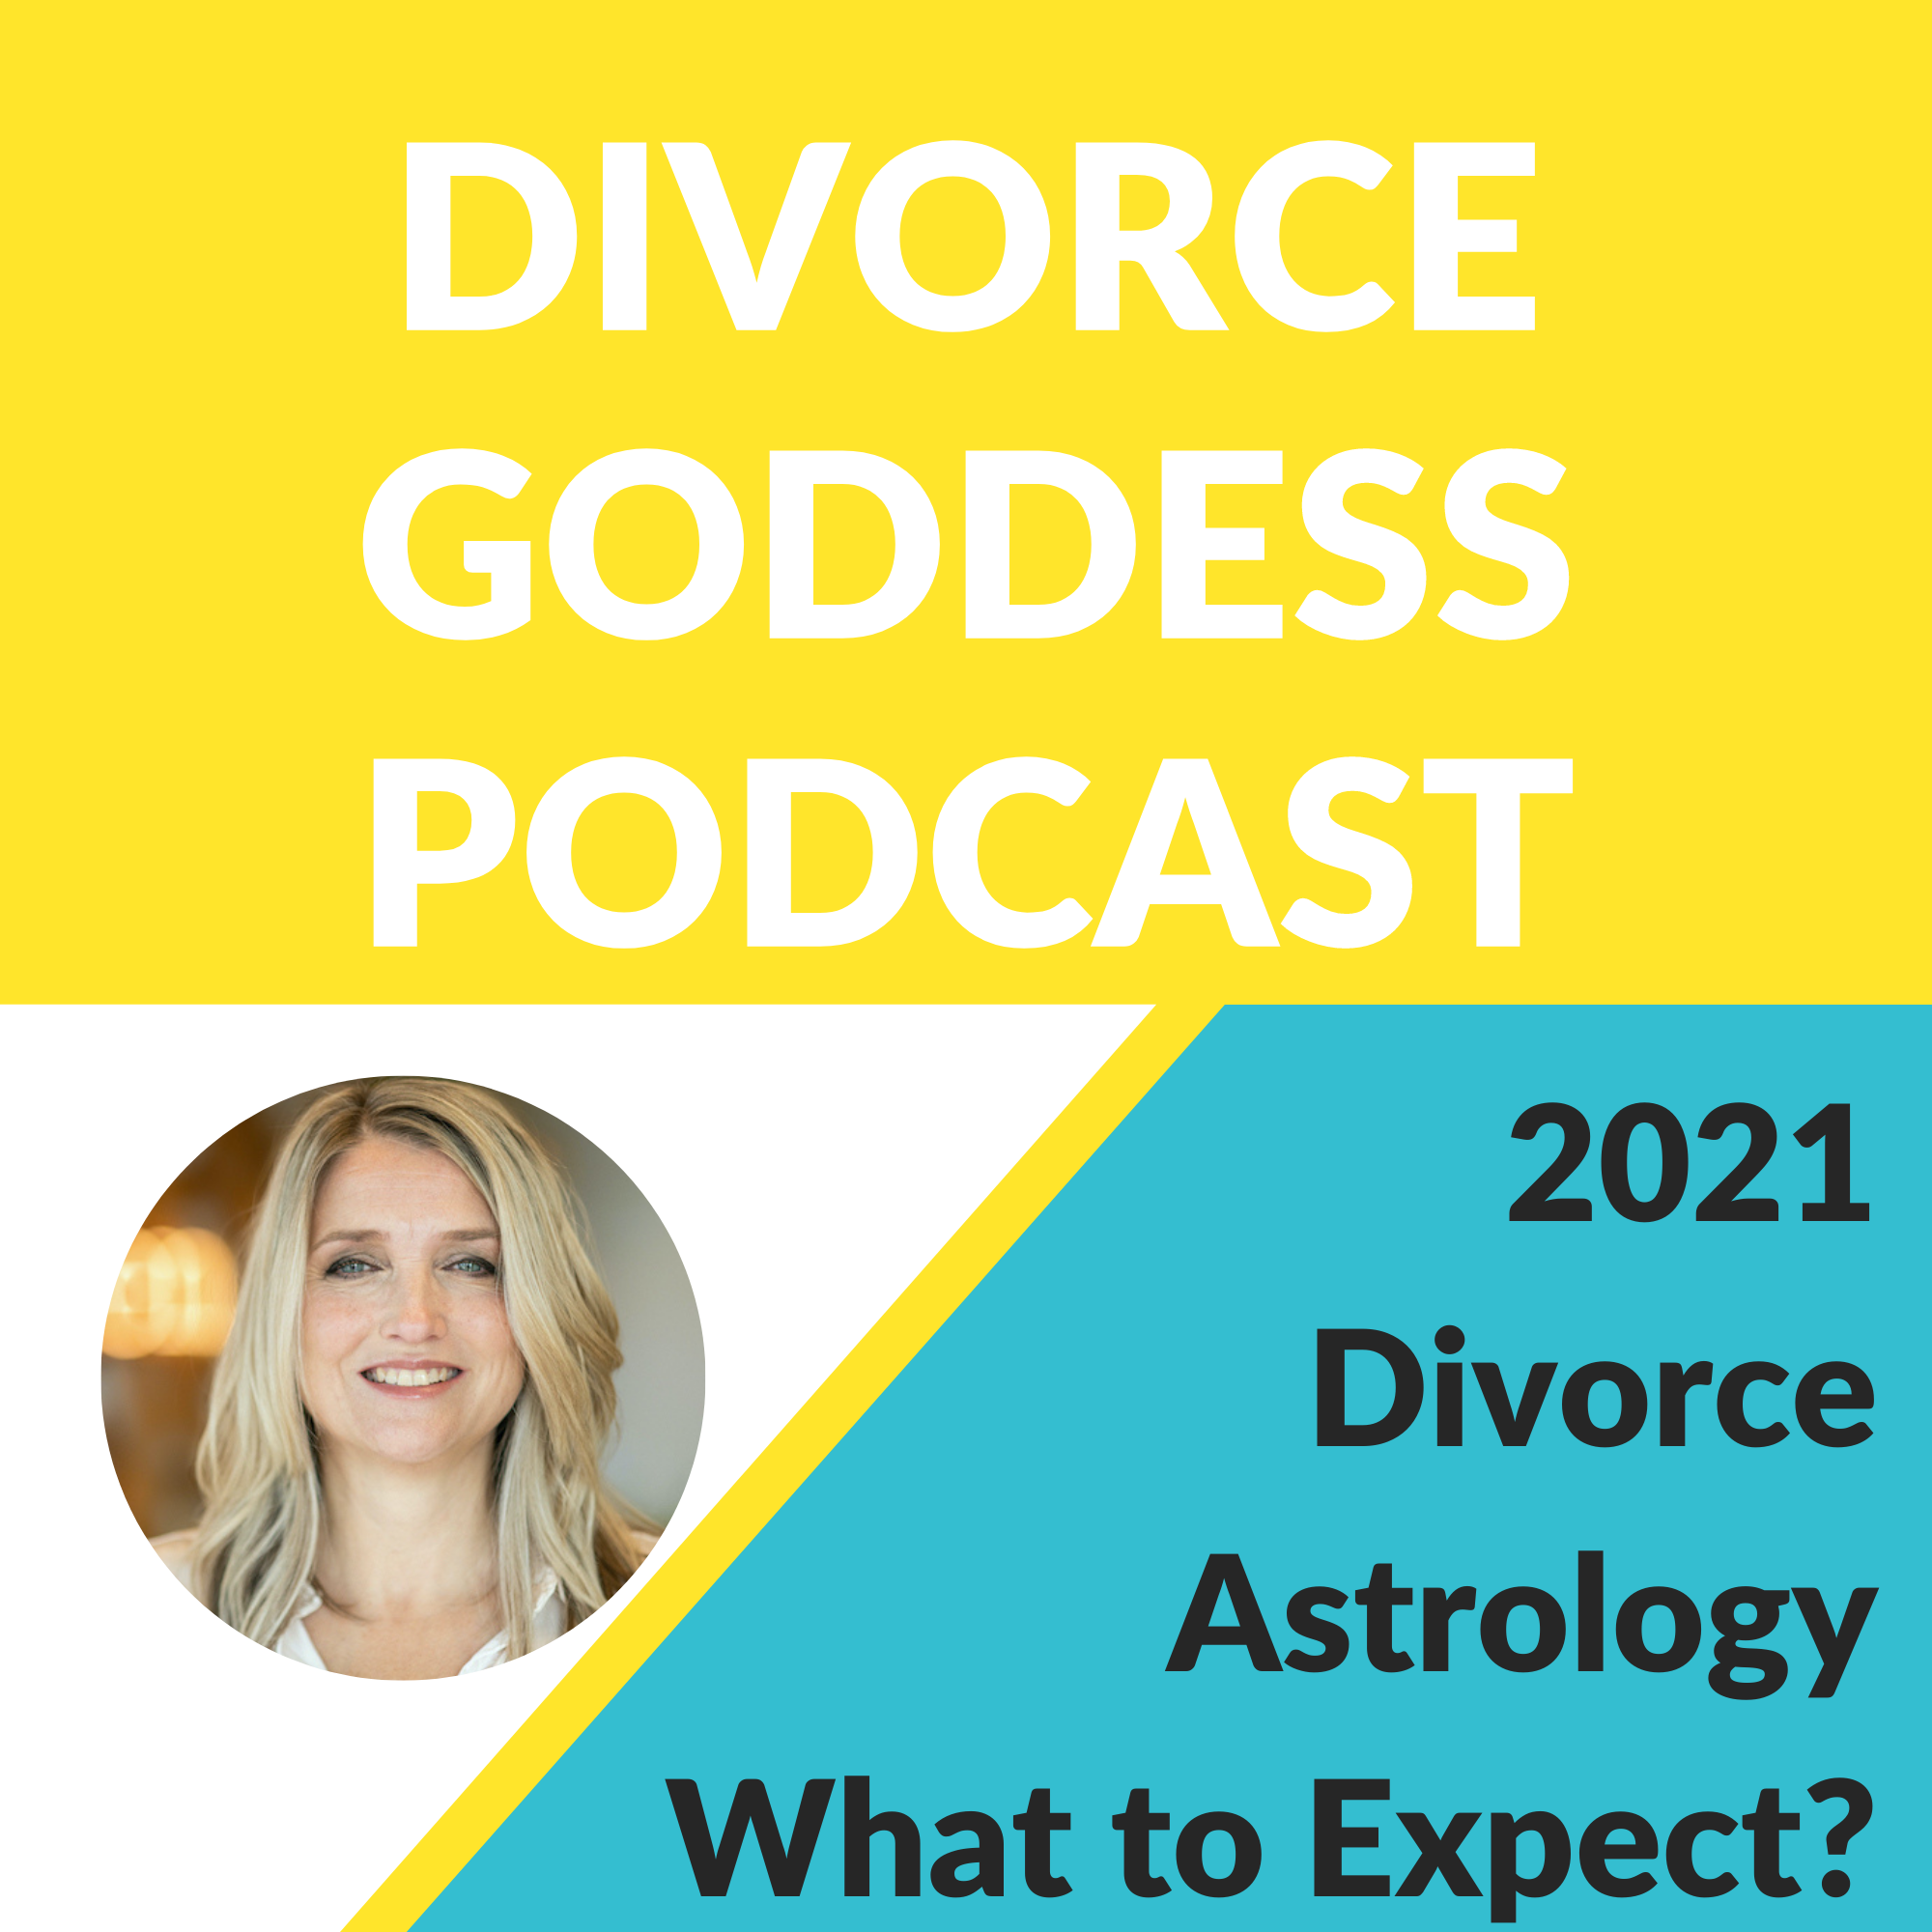 Divorce Goddess Podcast - 2021 - Divorce, Astrology and What to Expect!